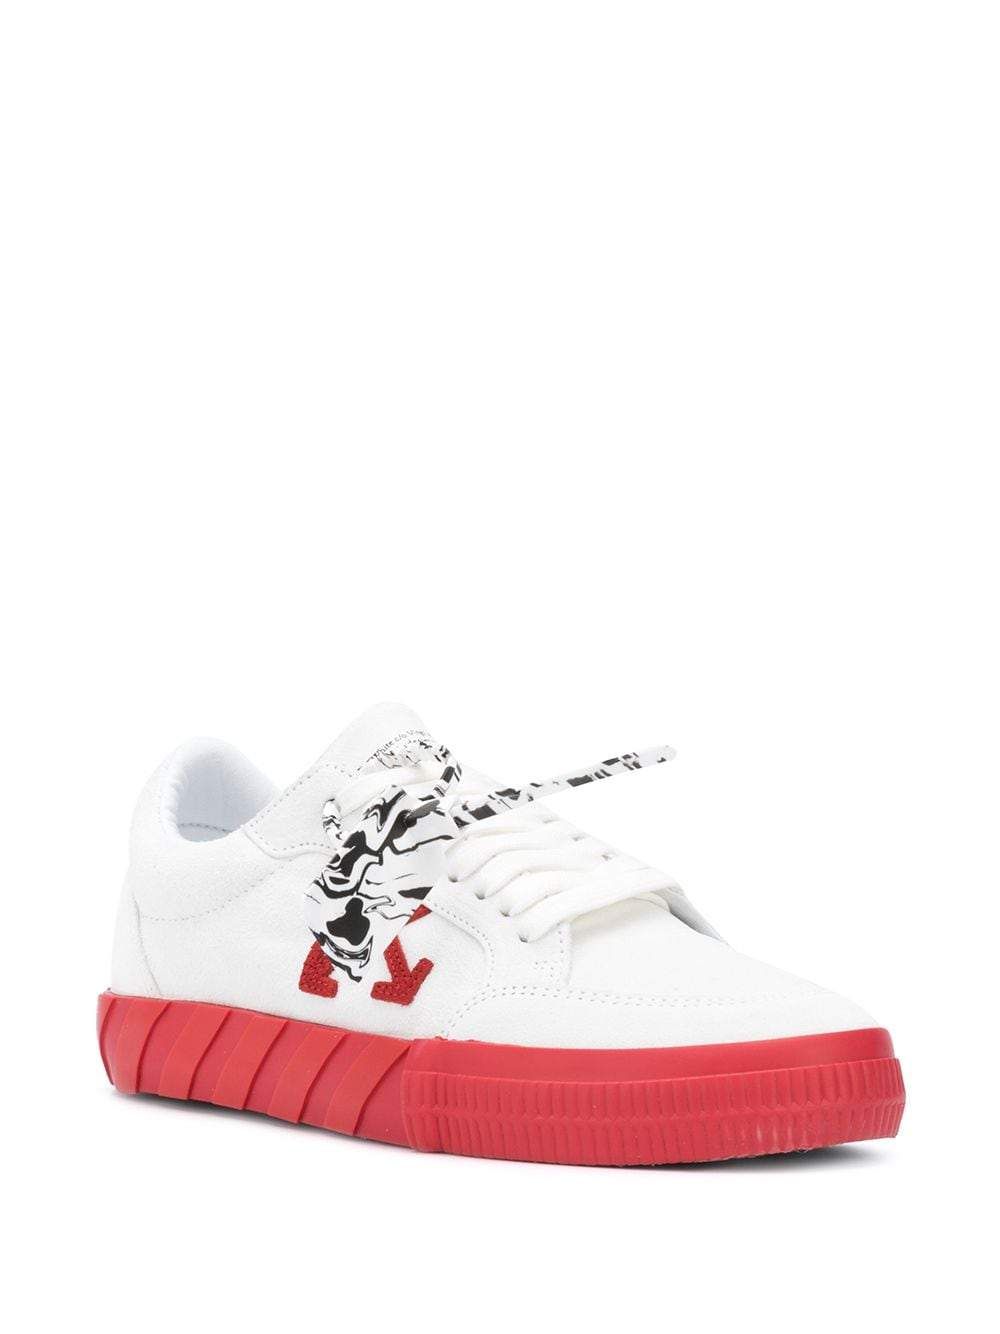 OFF-WHITE Low Vulcanized Sneaker Suede White/Red